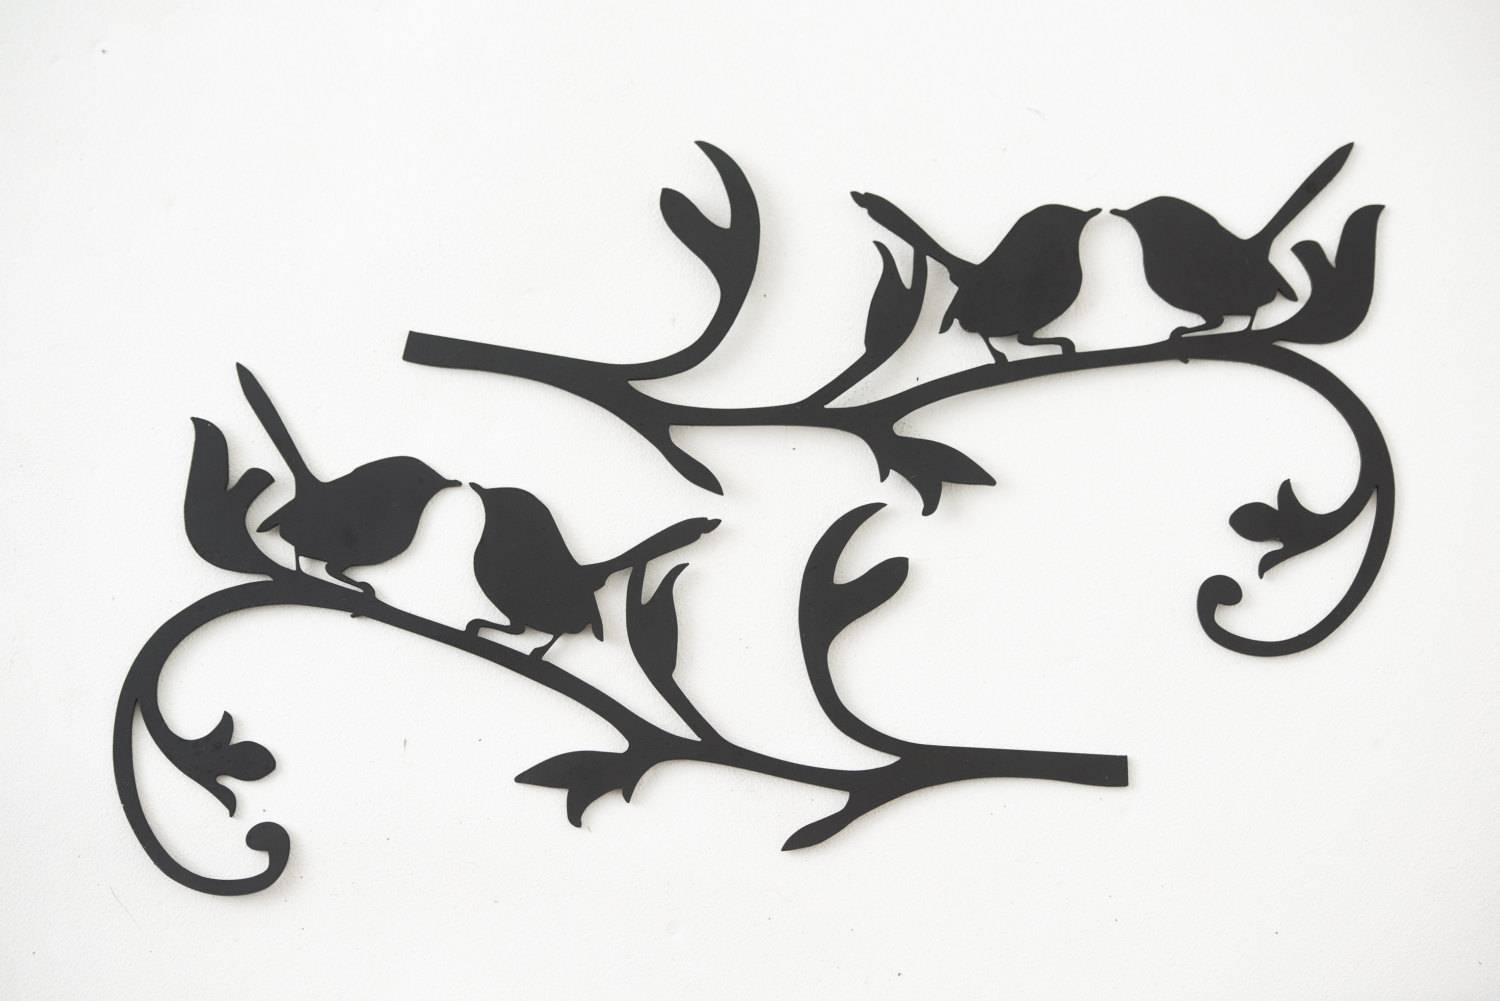 Wall Art Designs: Metal Bird Wall Art Hand Drawn And Laser Cut Intended For Newest Branch Metal Wall Art (View 18 of 20)